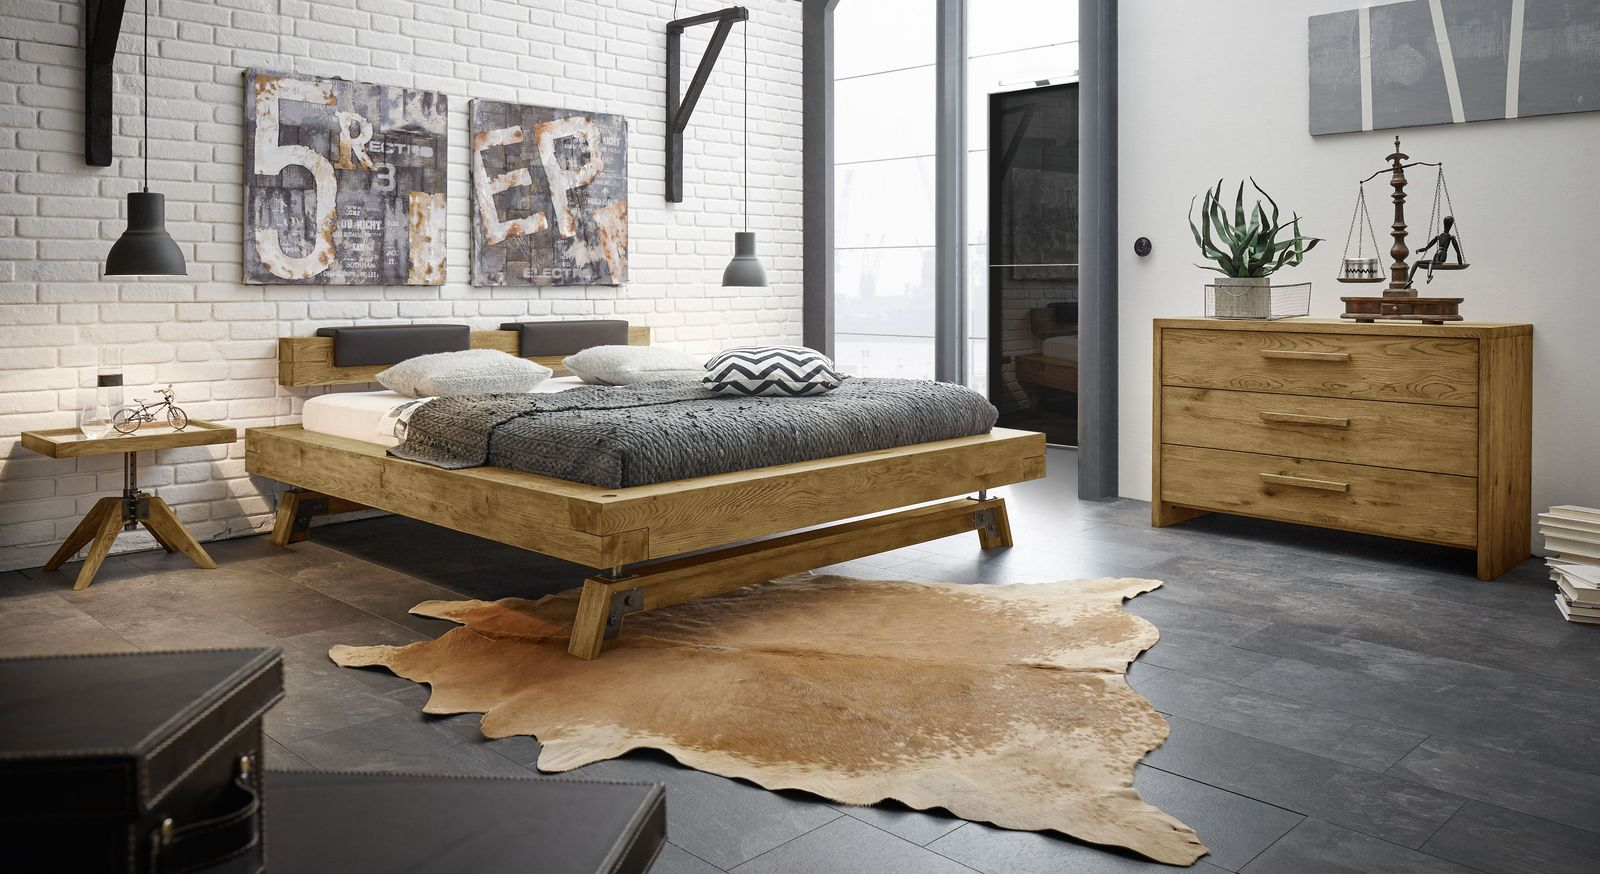 industrial schlafzimmer wildeiche mit vintage charme valdivia. Black Bedroom Furniture Sets. Home Design Ideas